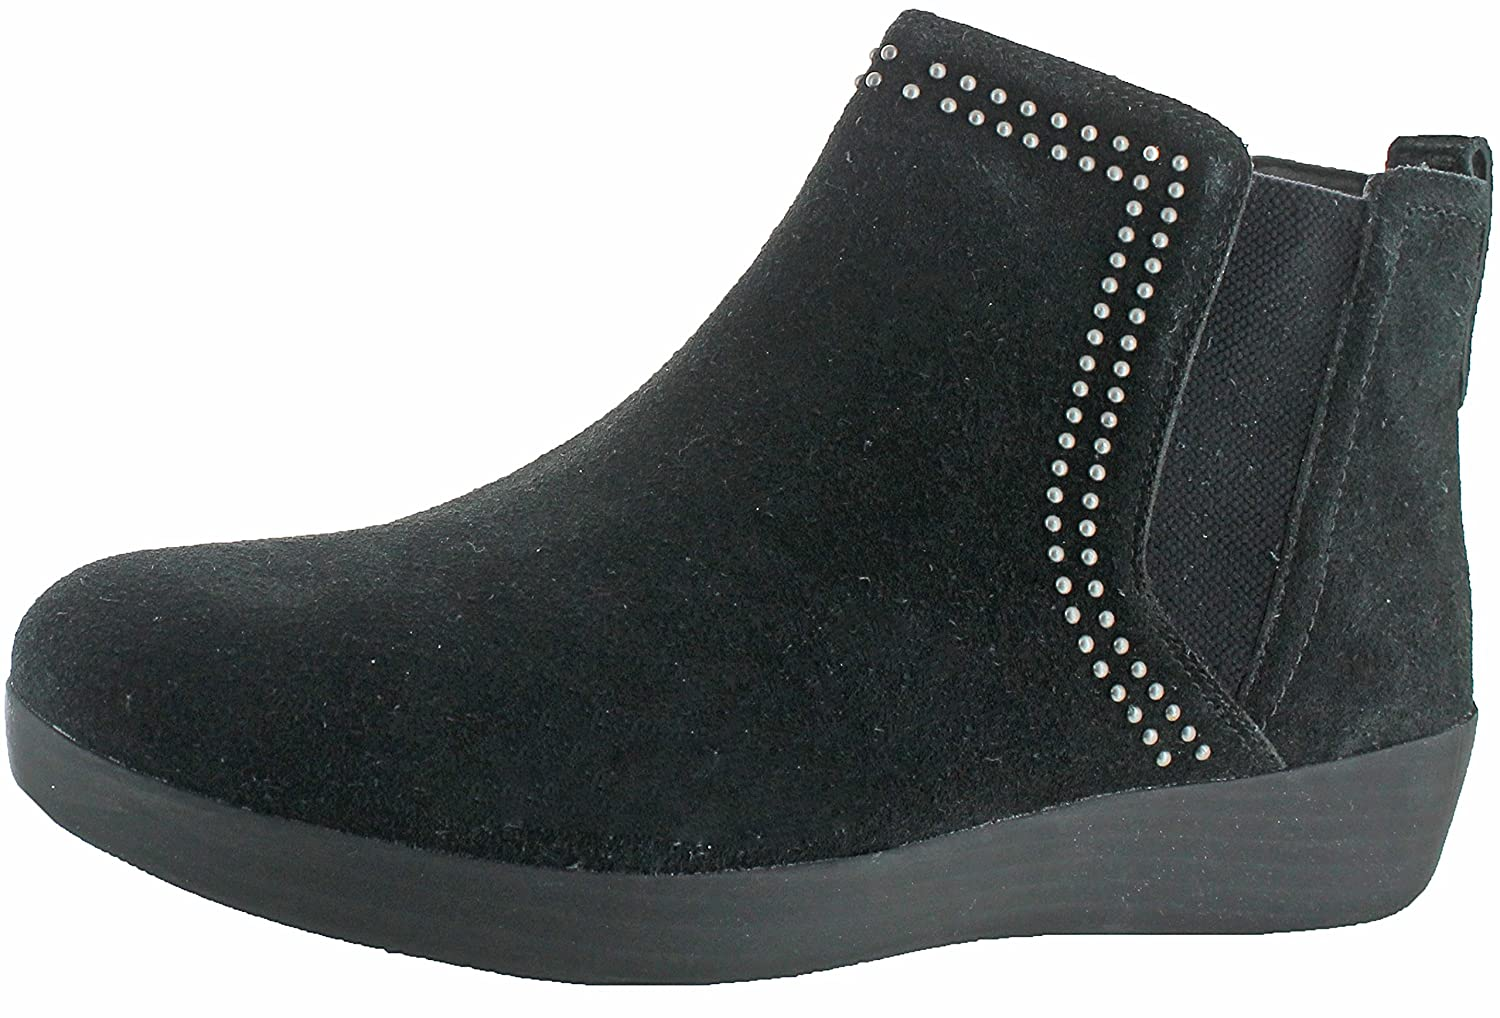 FitFlop Womens Superchelsea Suede Boot w/Studs B0727NNMXL 5 B(M) US|Black